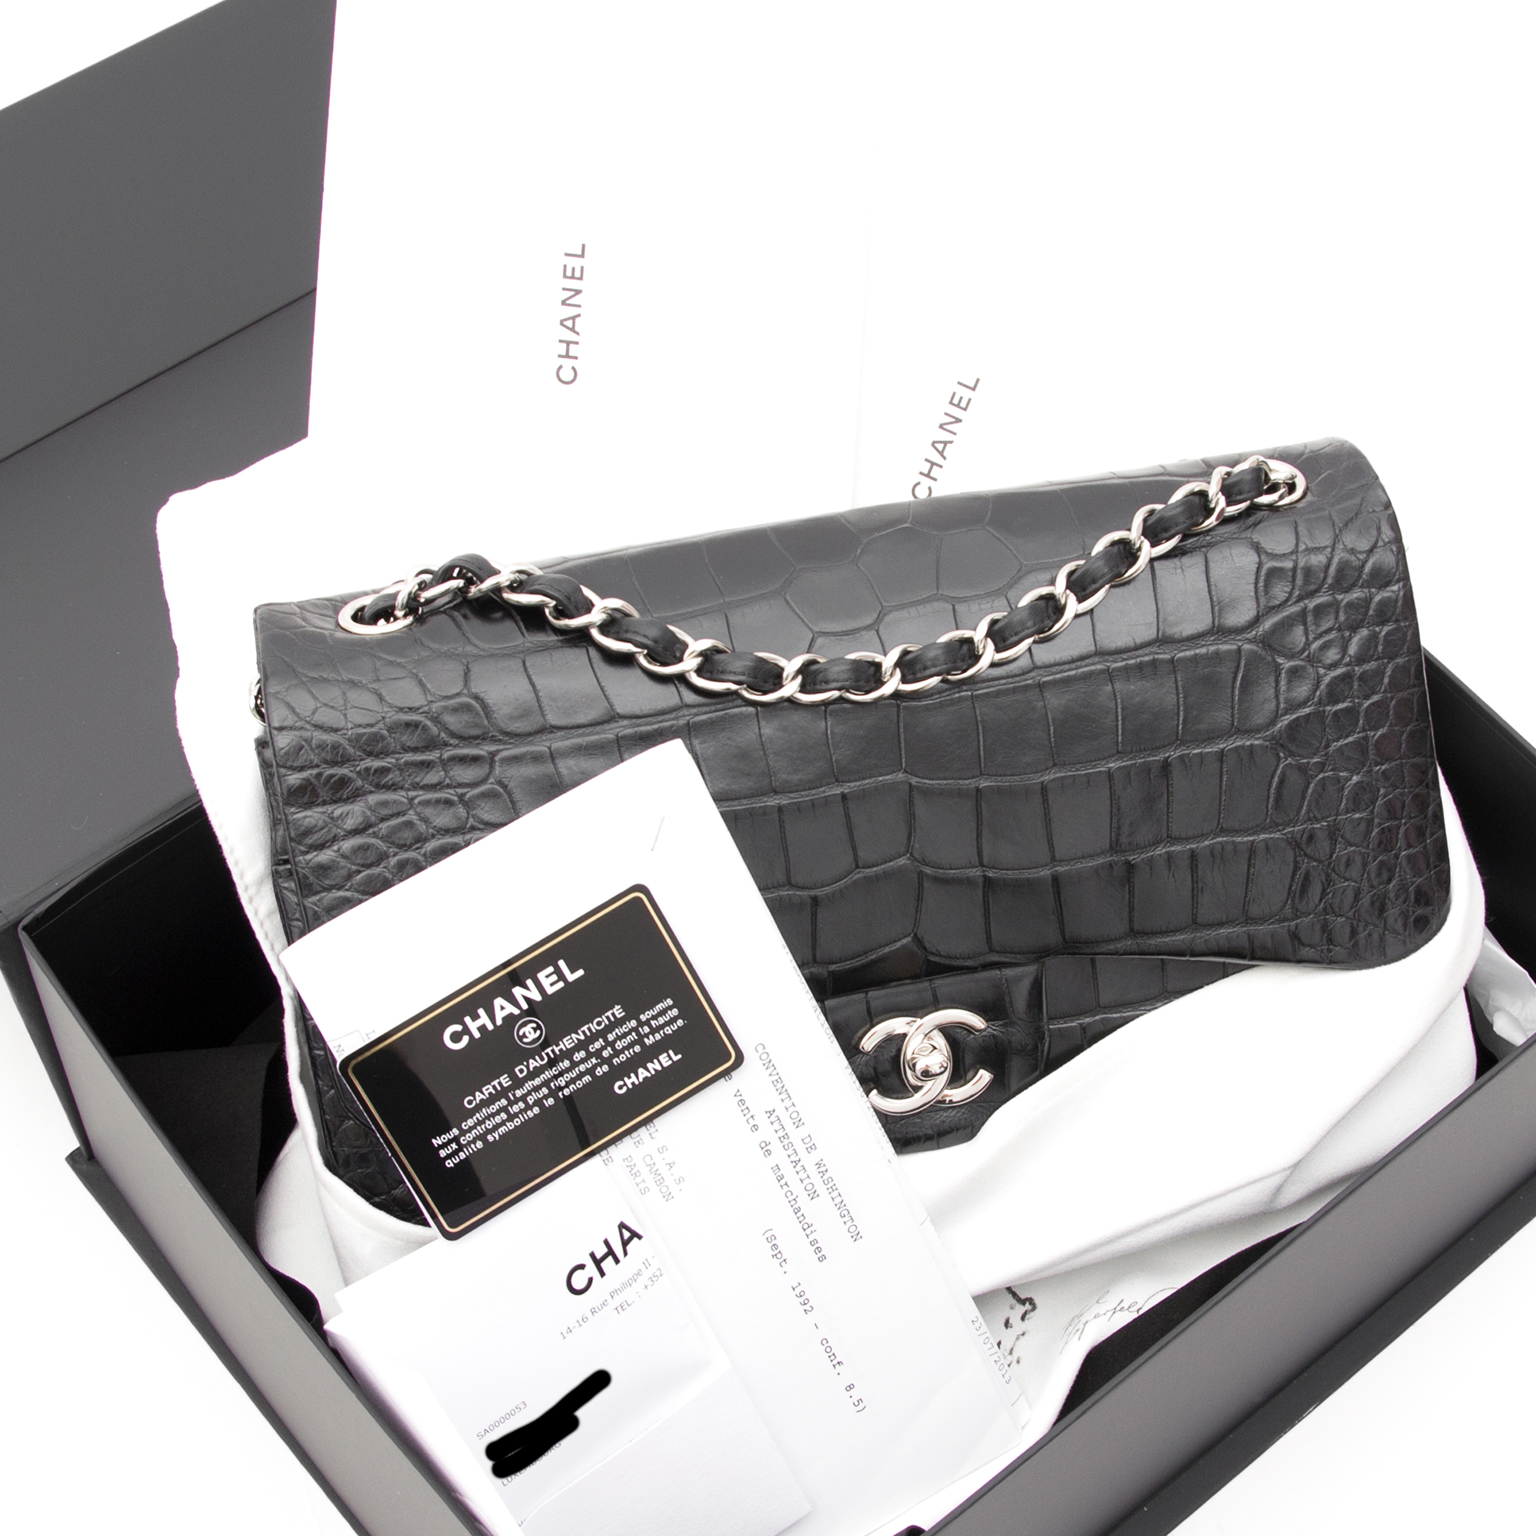 Labellov Going Hands Free Cross Body Bags Edits Buy And Sell - Free software for invoices chanel online store